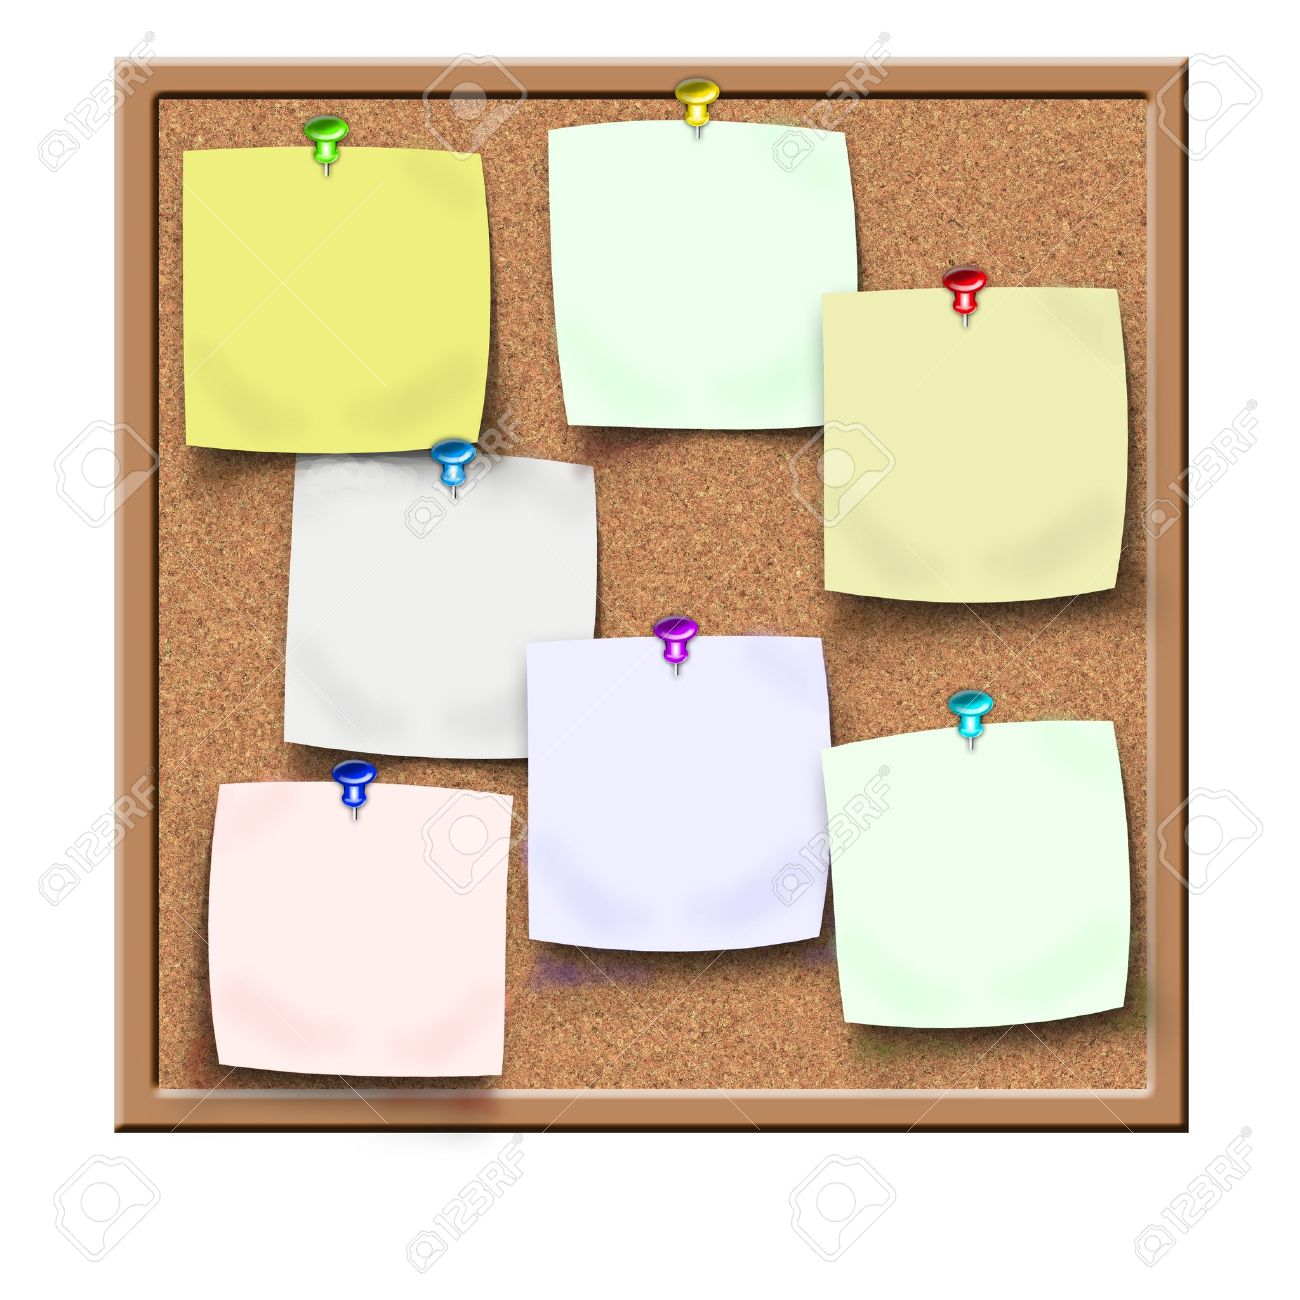 cork board with sticker reminders Stock Photo - 9037153